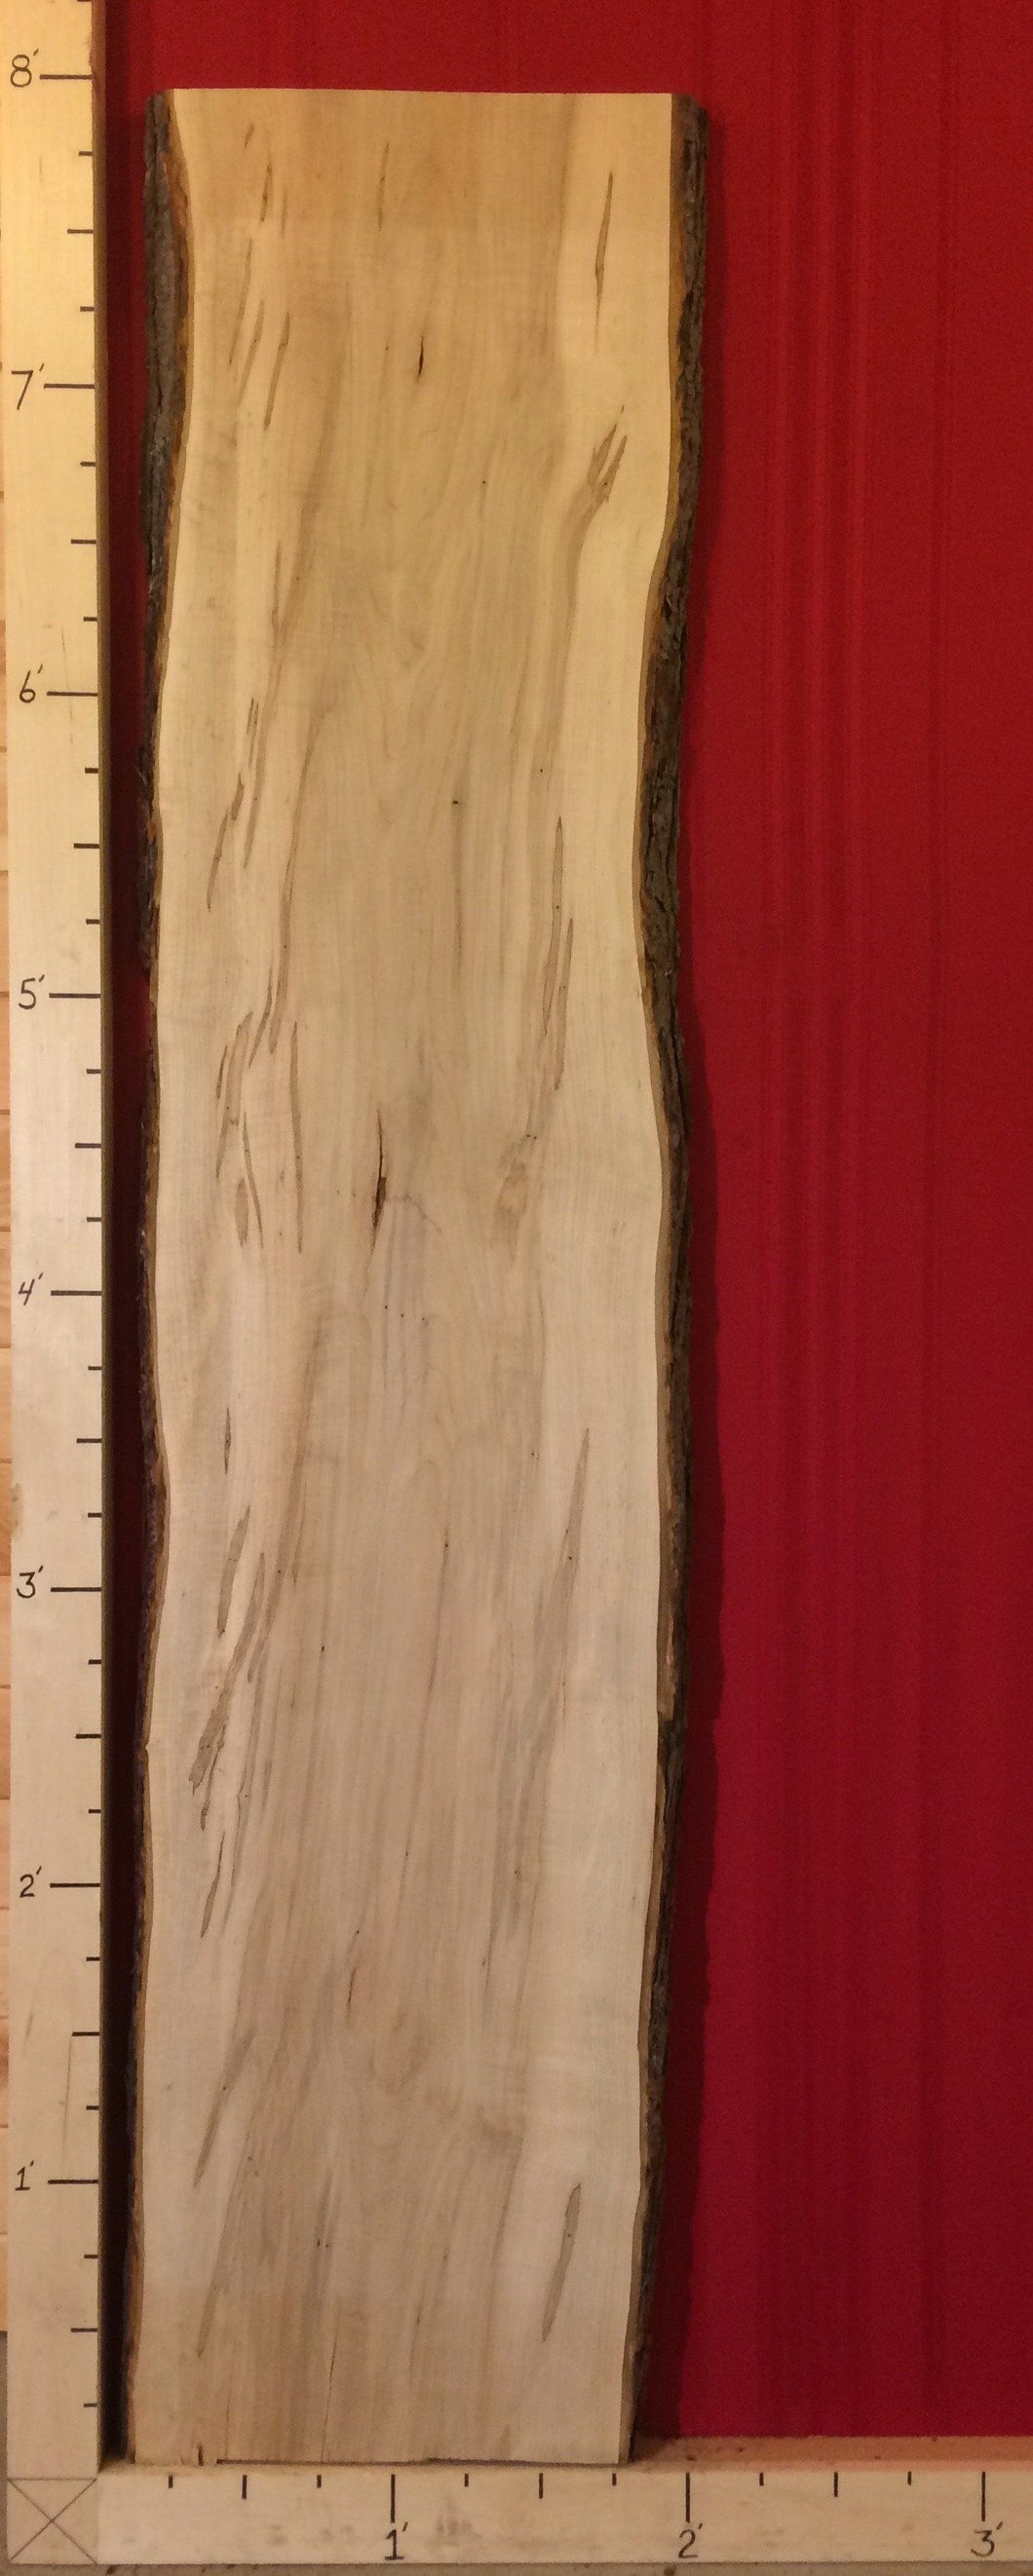 Wormy maple live edge slab